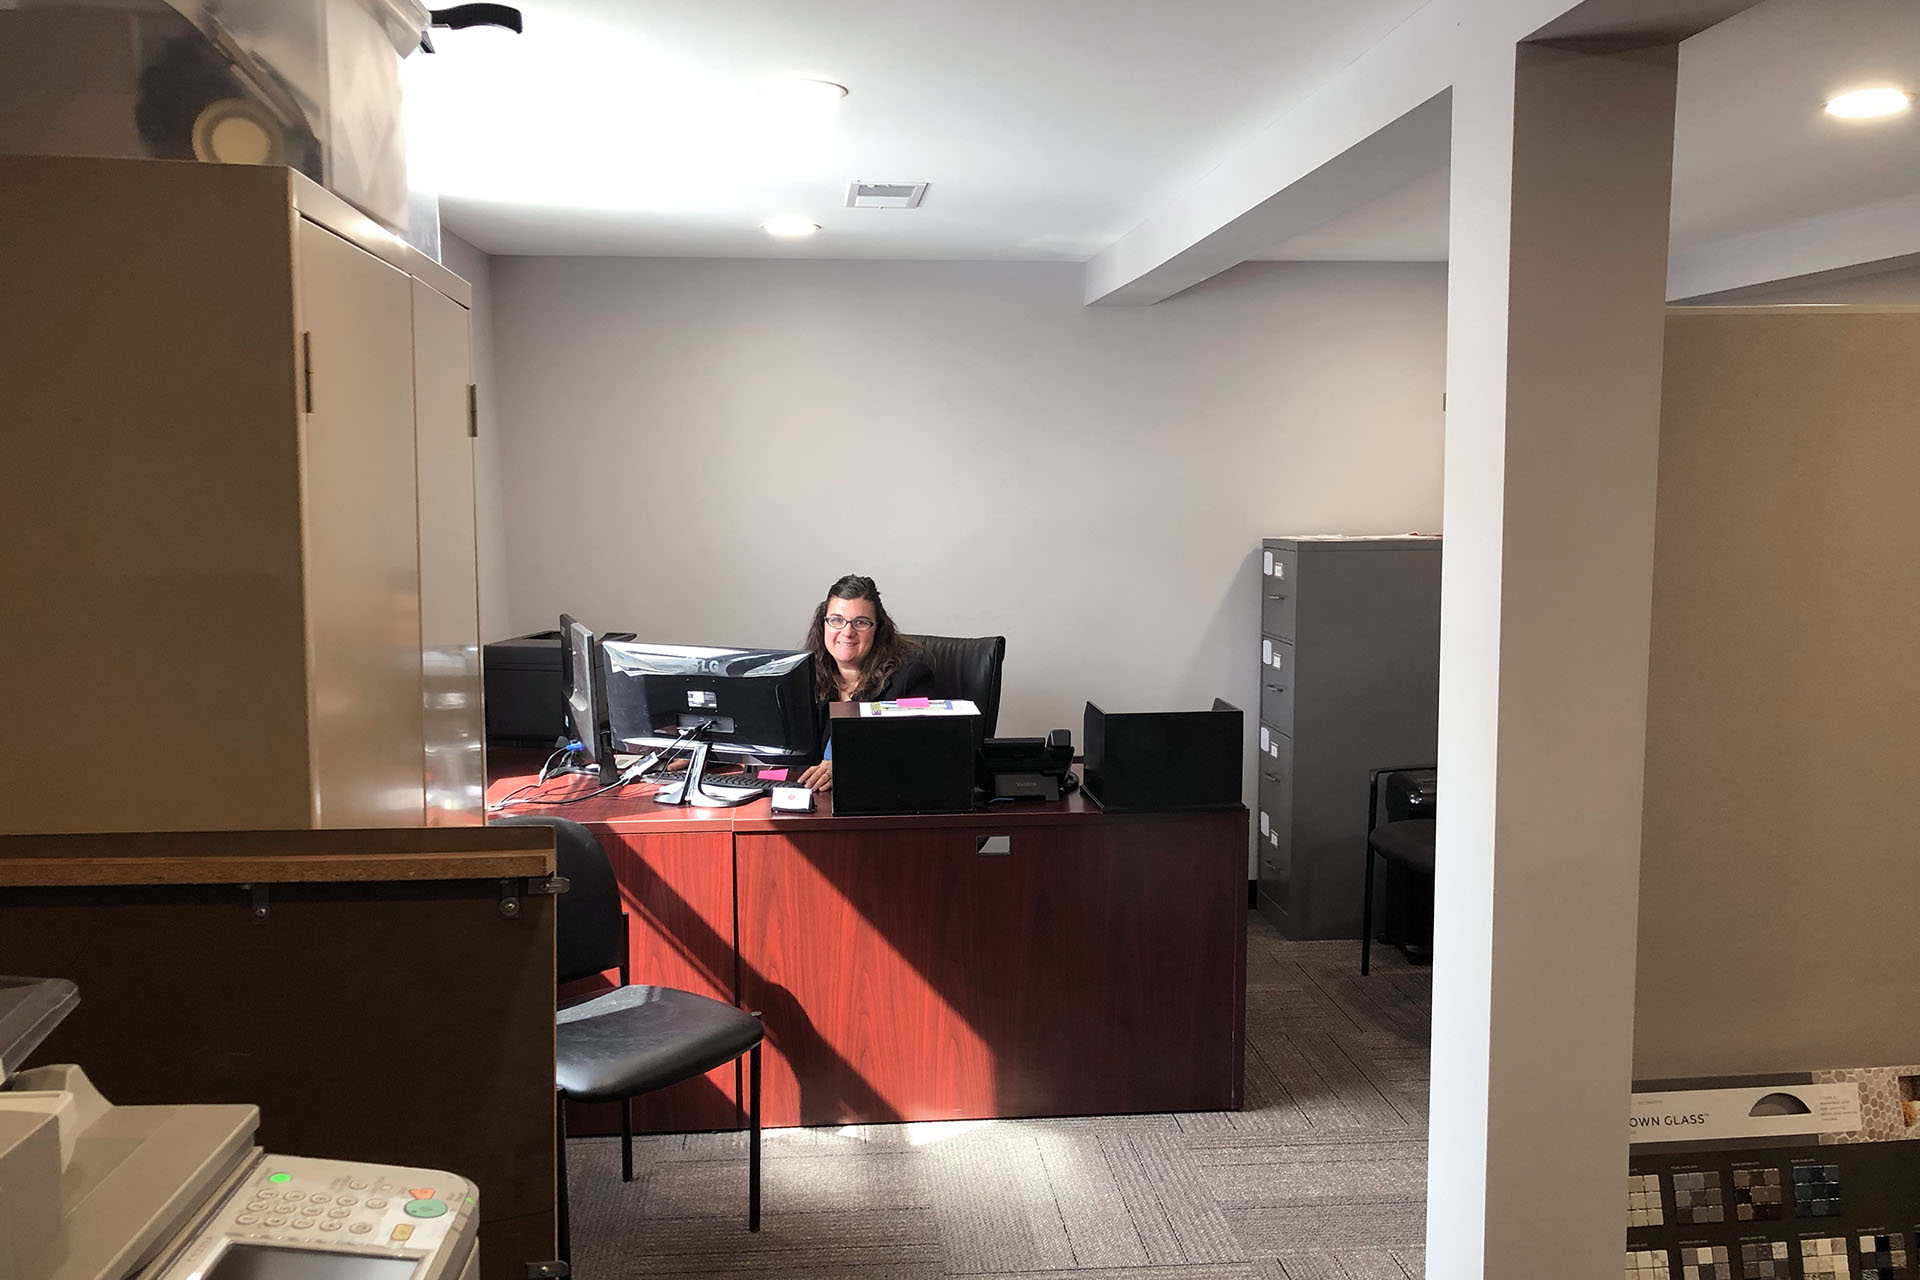 6687-2-after-office-sherri-march-2019-dandsflooring.jpg